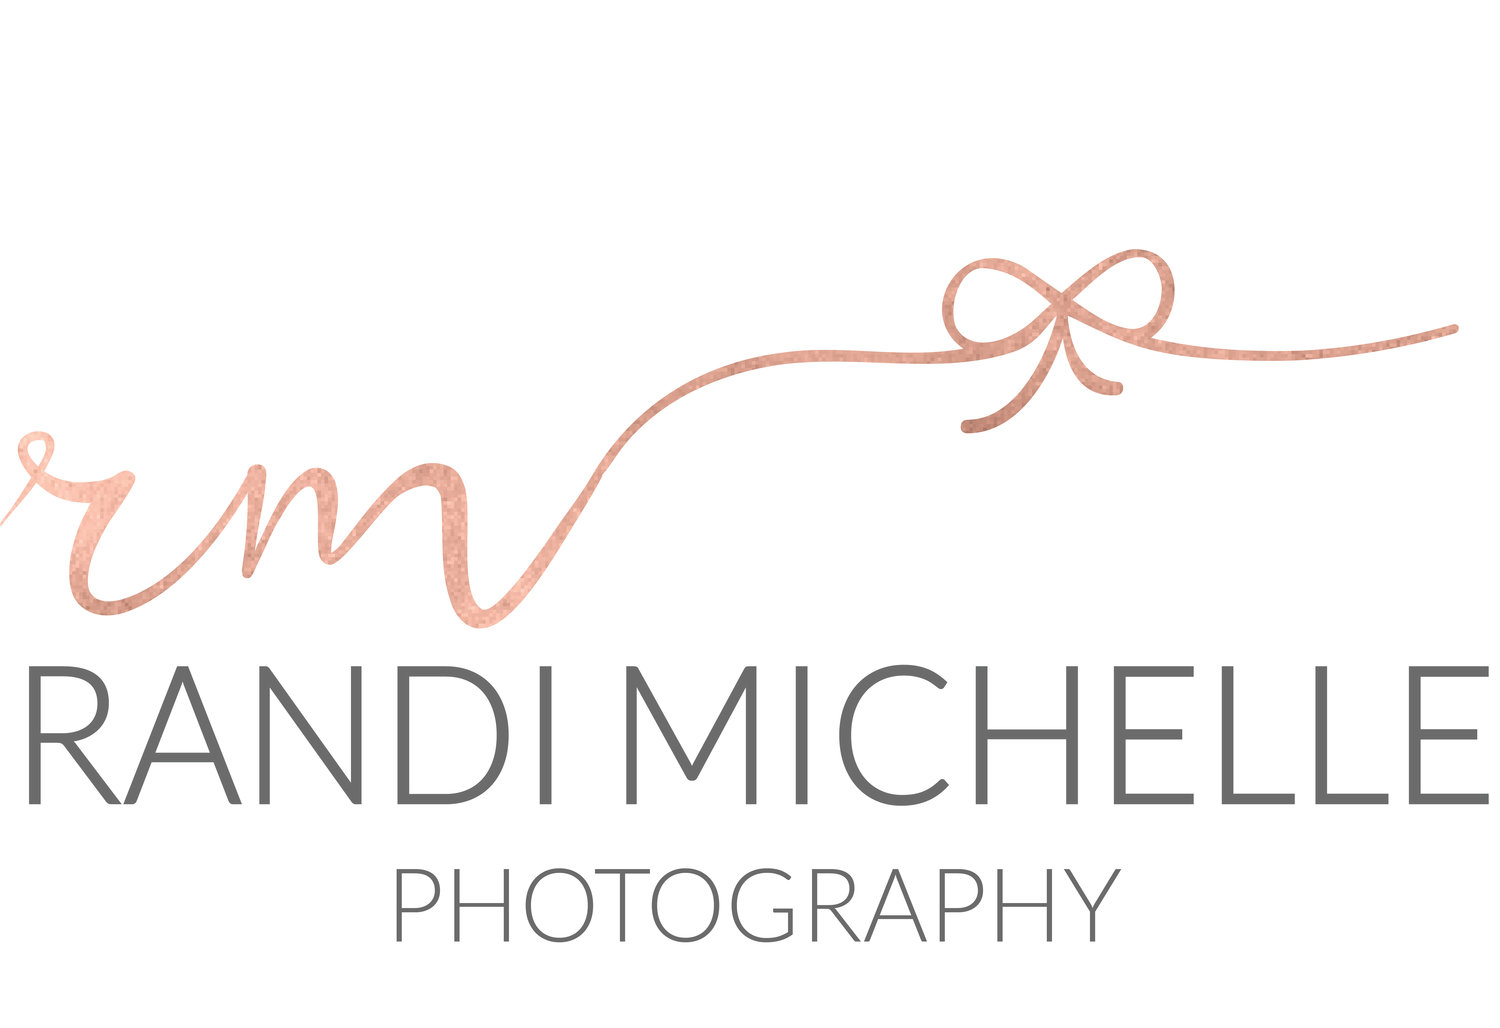 Randi Michelle Photography